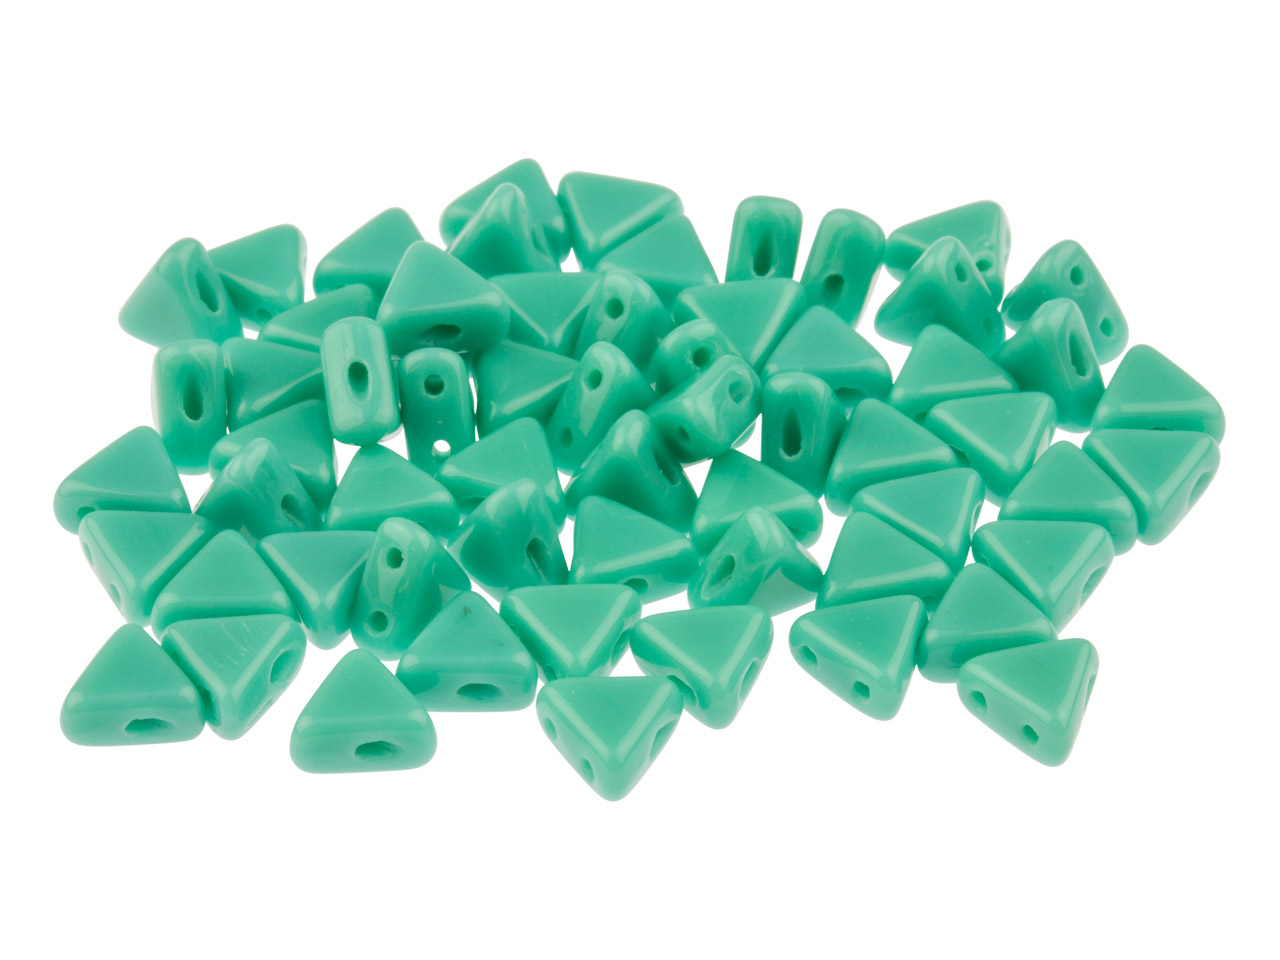 Kheops Puca 6mm Czech Beads, Opaque Green Turquoise, 9g Tube, Two-holed Beads